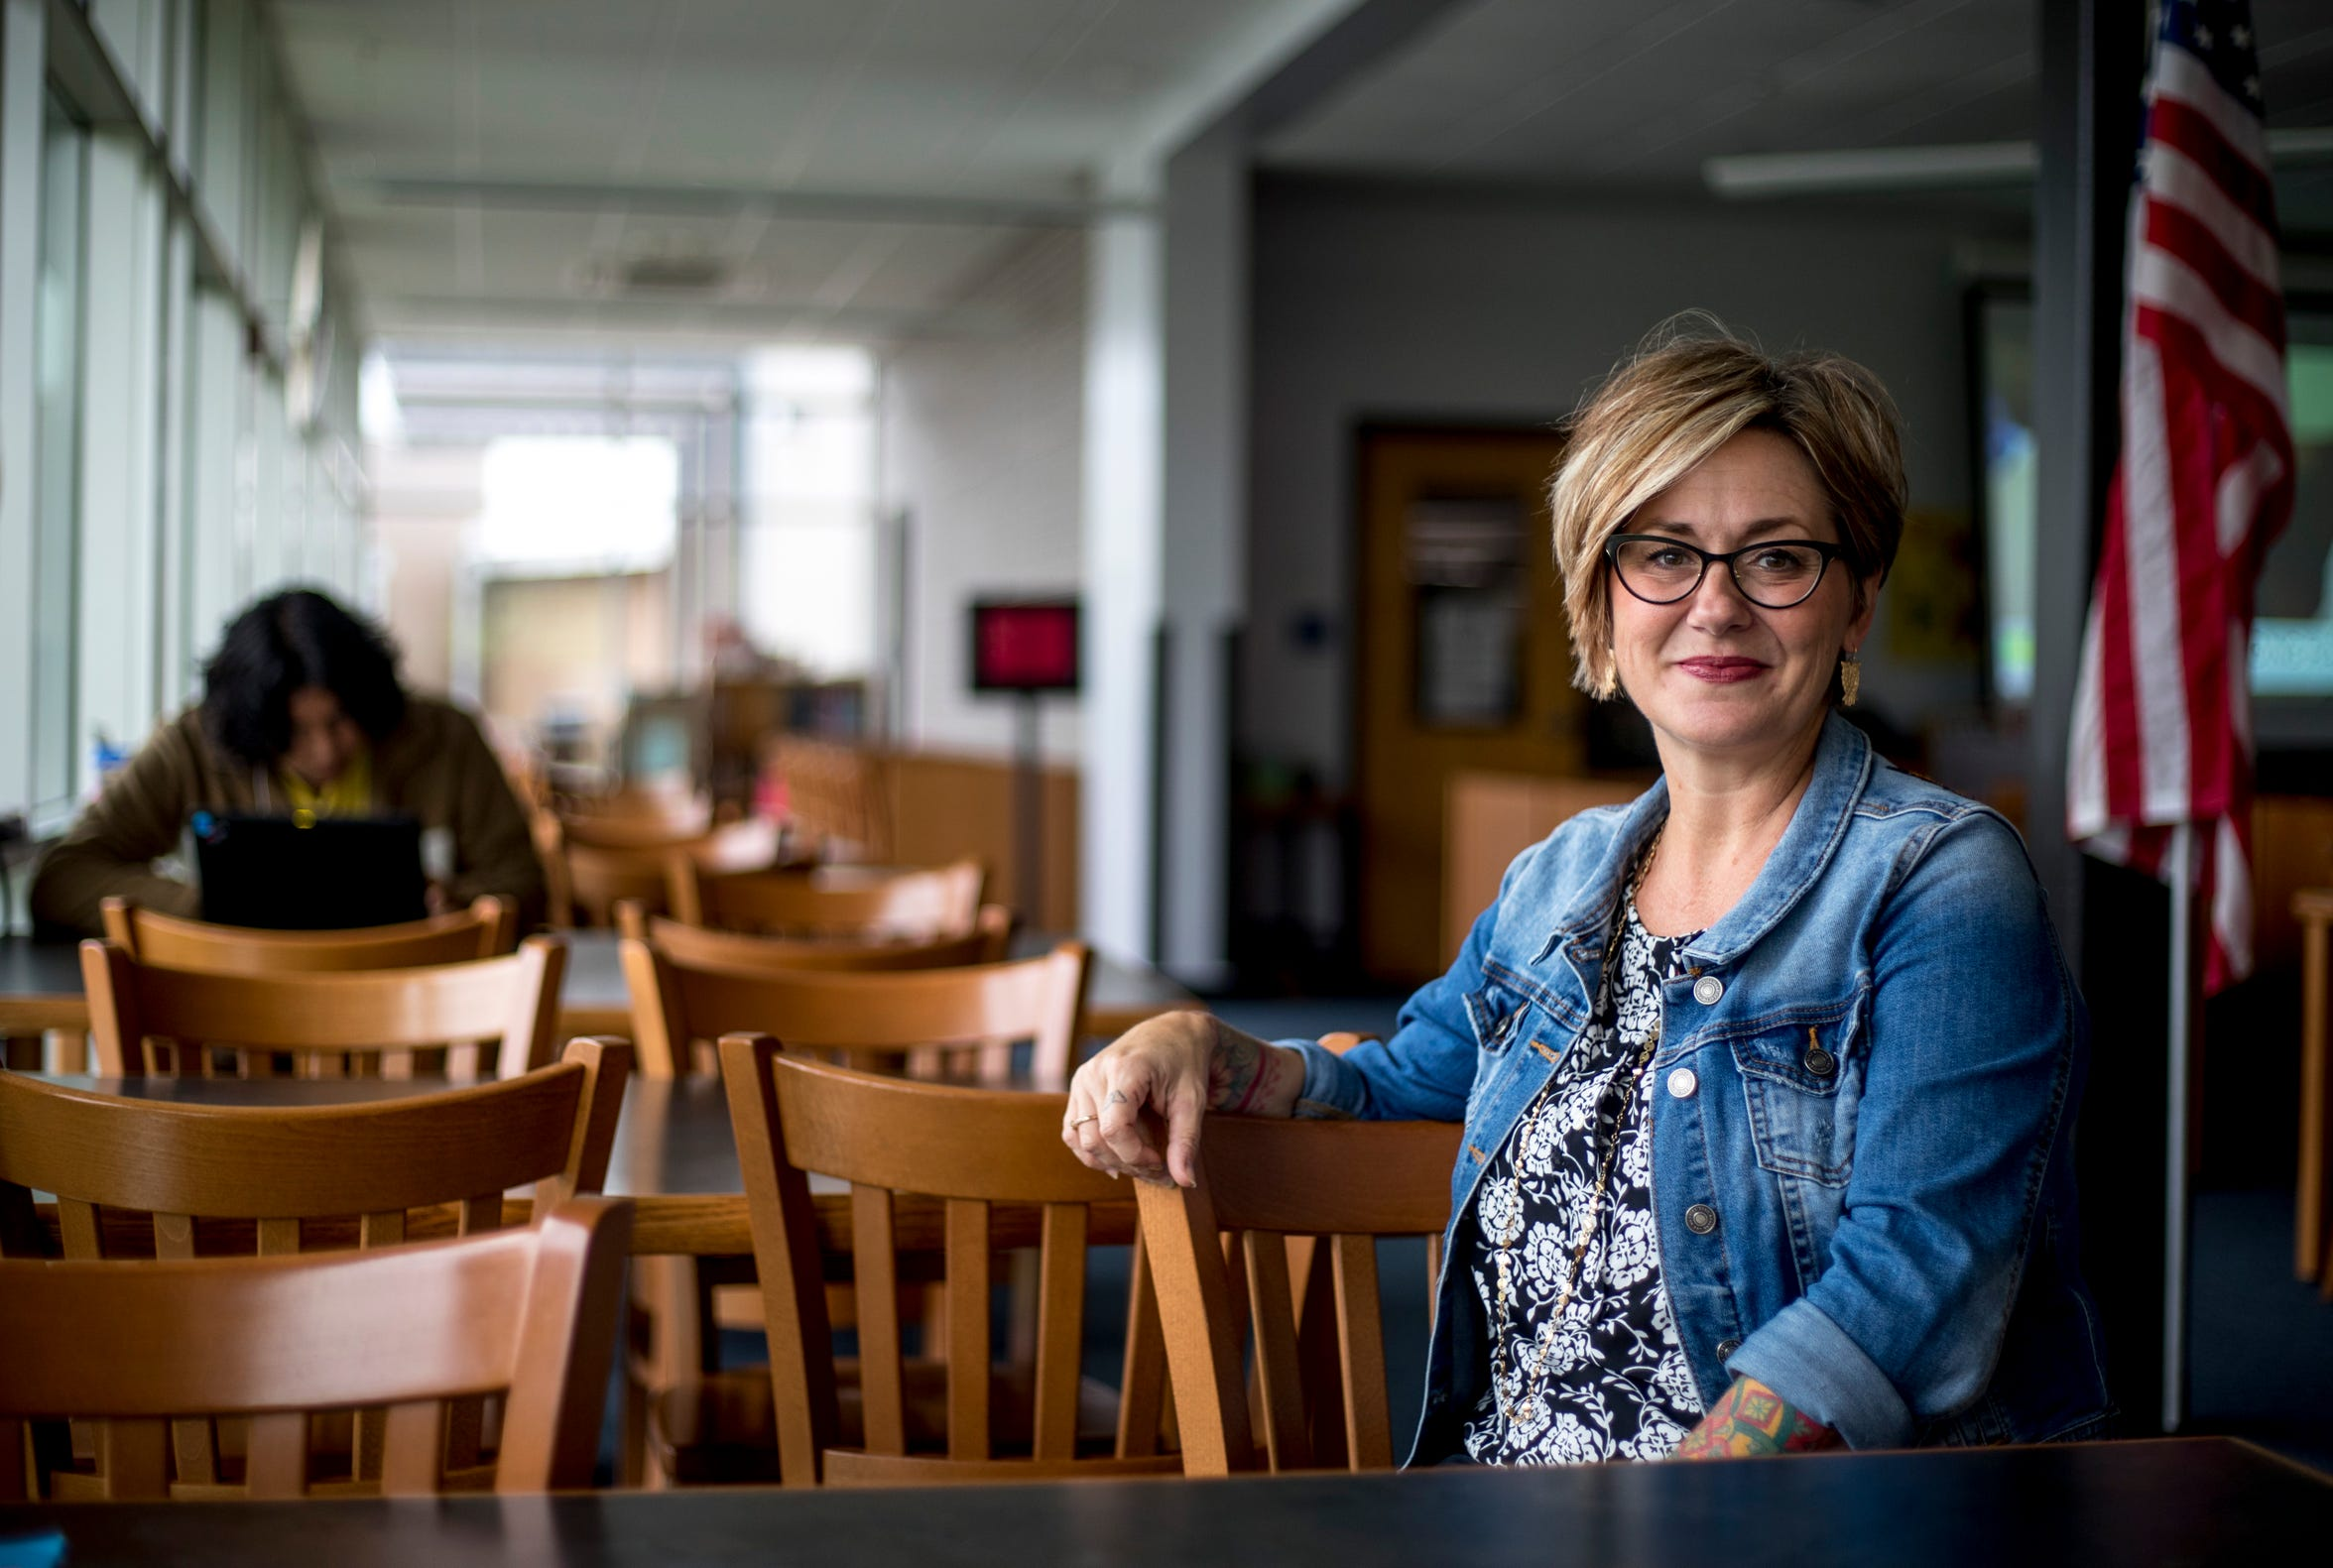 Melanie Hazen, who teaches AP literature and poetry and serves as school librarian at Montgomery Central High School, sits in the library on Monday, Aug. 26, 2019.